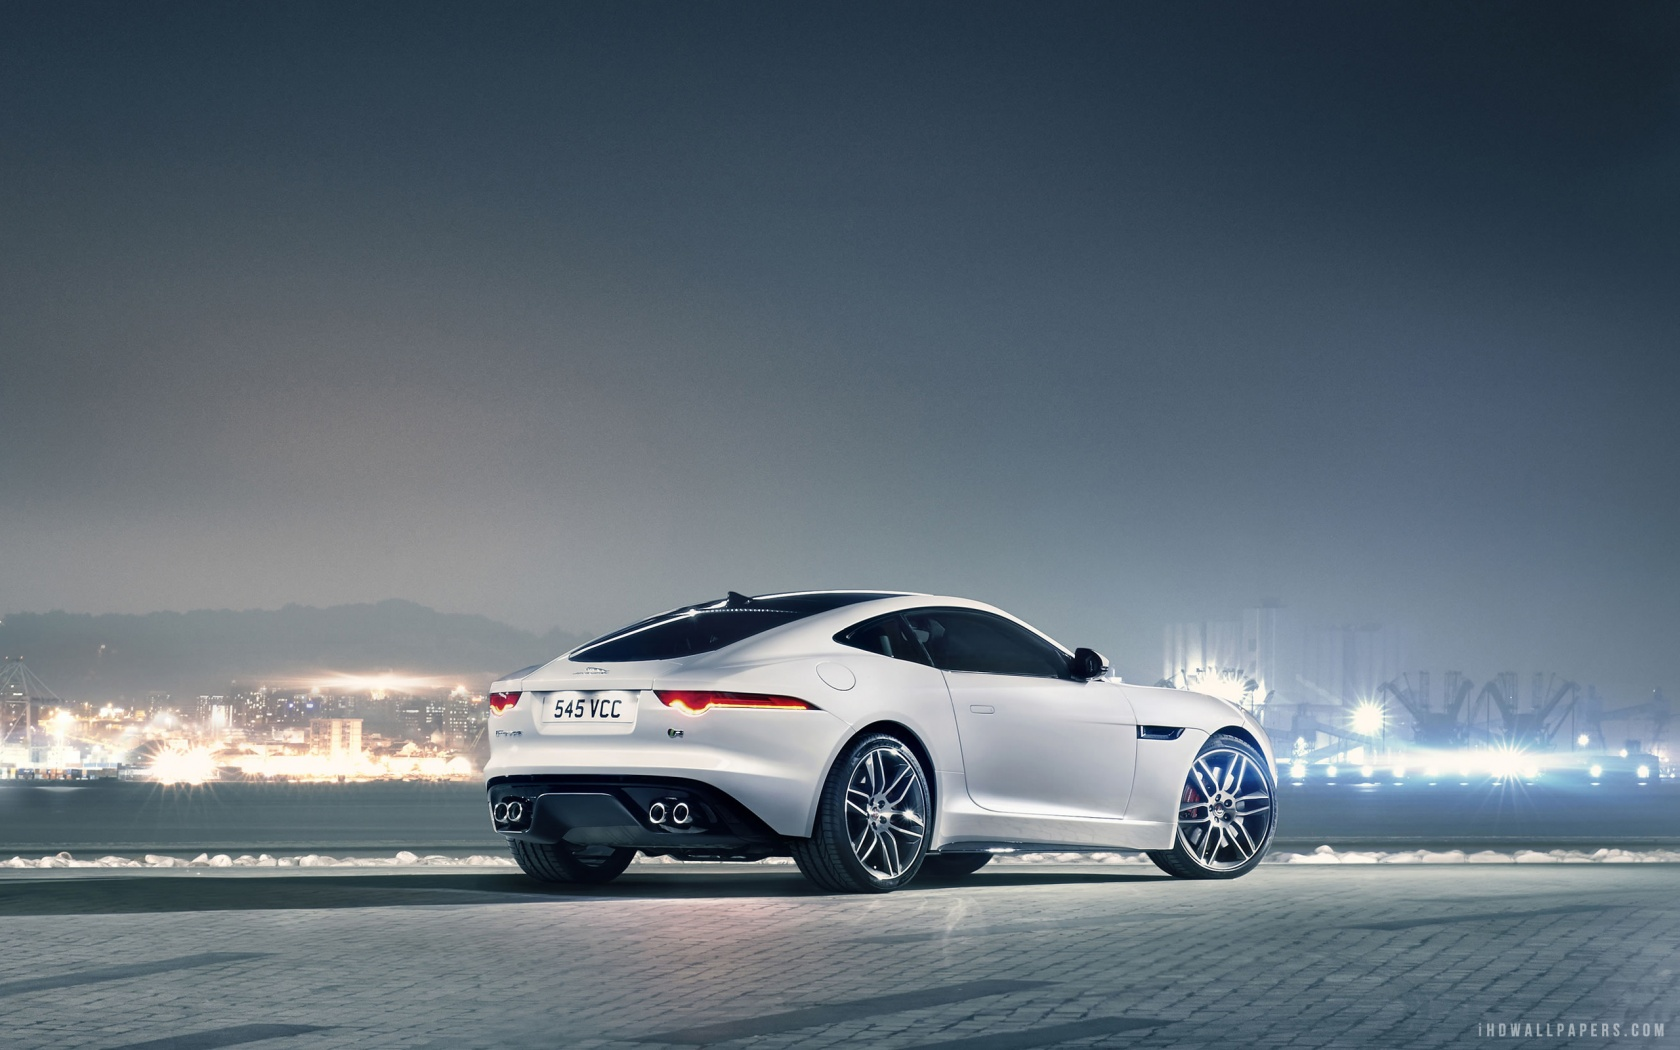 Jaguar F Type Coupe 2015 HD Wallpaper   iHD Wallpapers 1680x1050